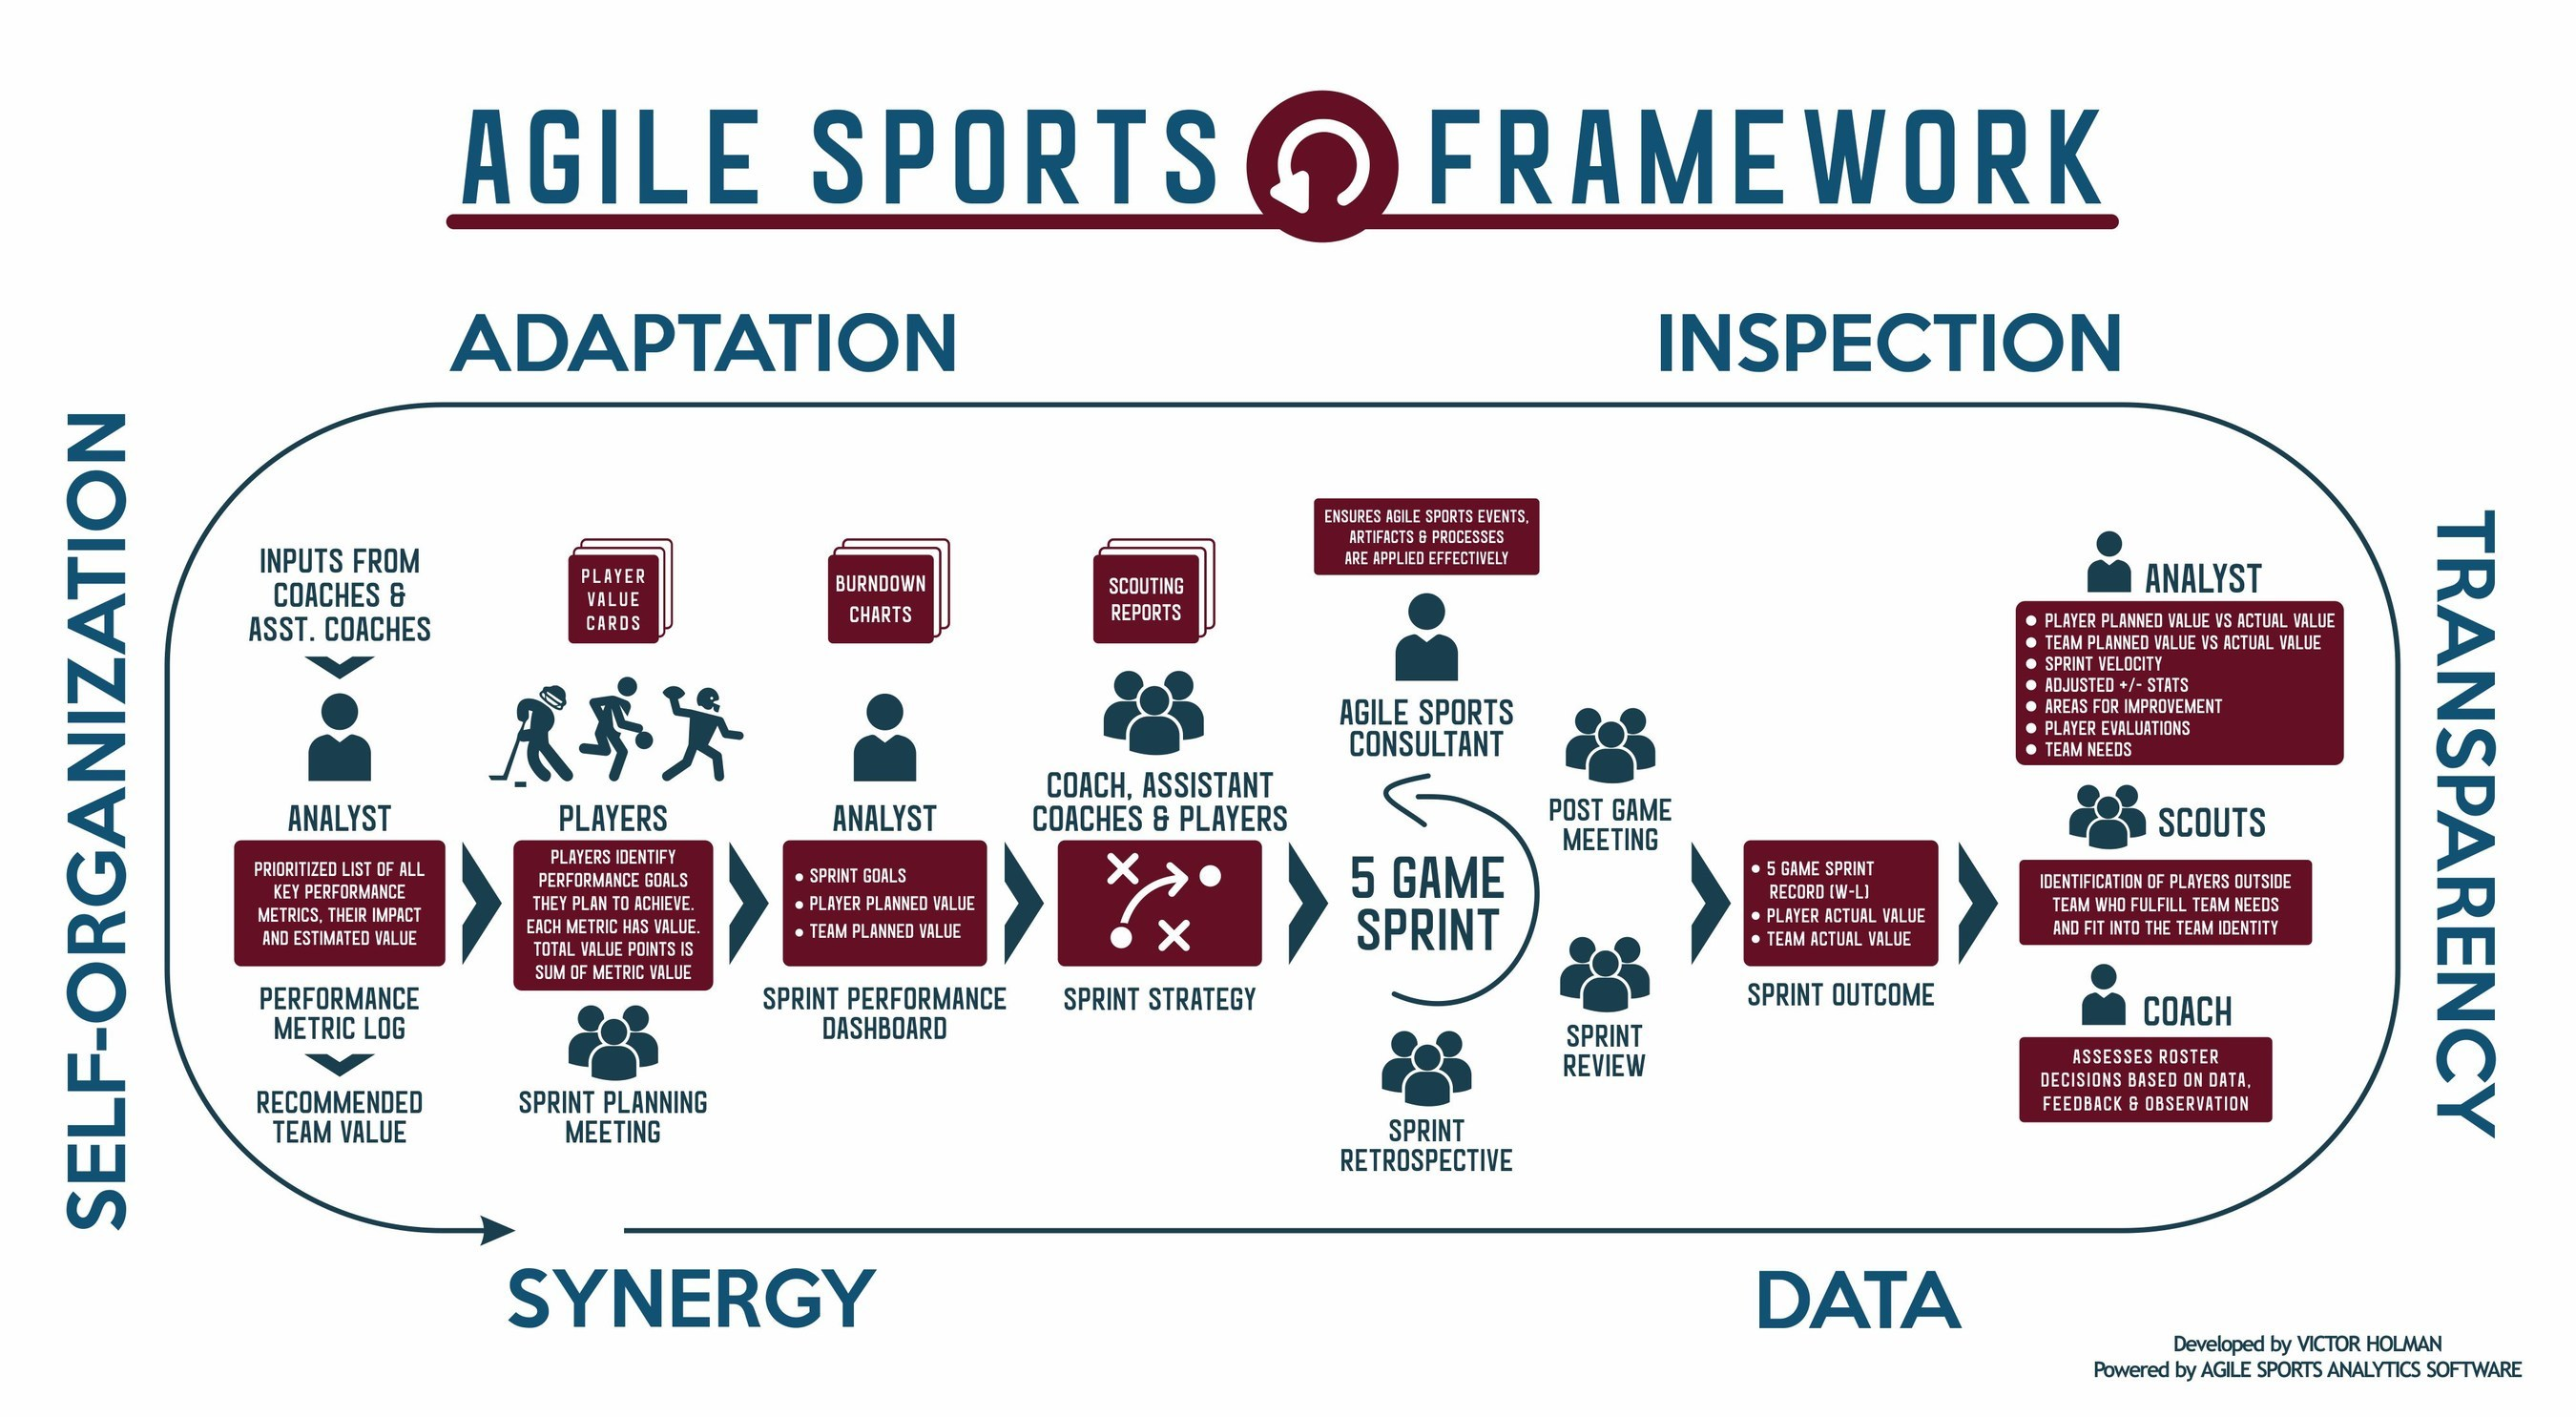 The Agile Sports Framework defines the roles, events, processes and tools teams need to measure player value and reach team goals.